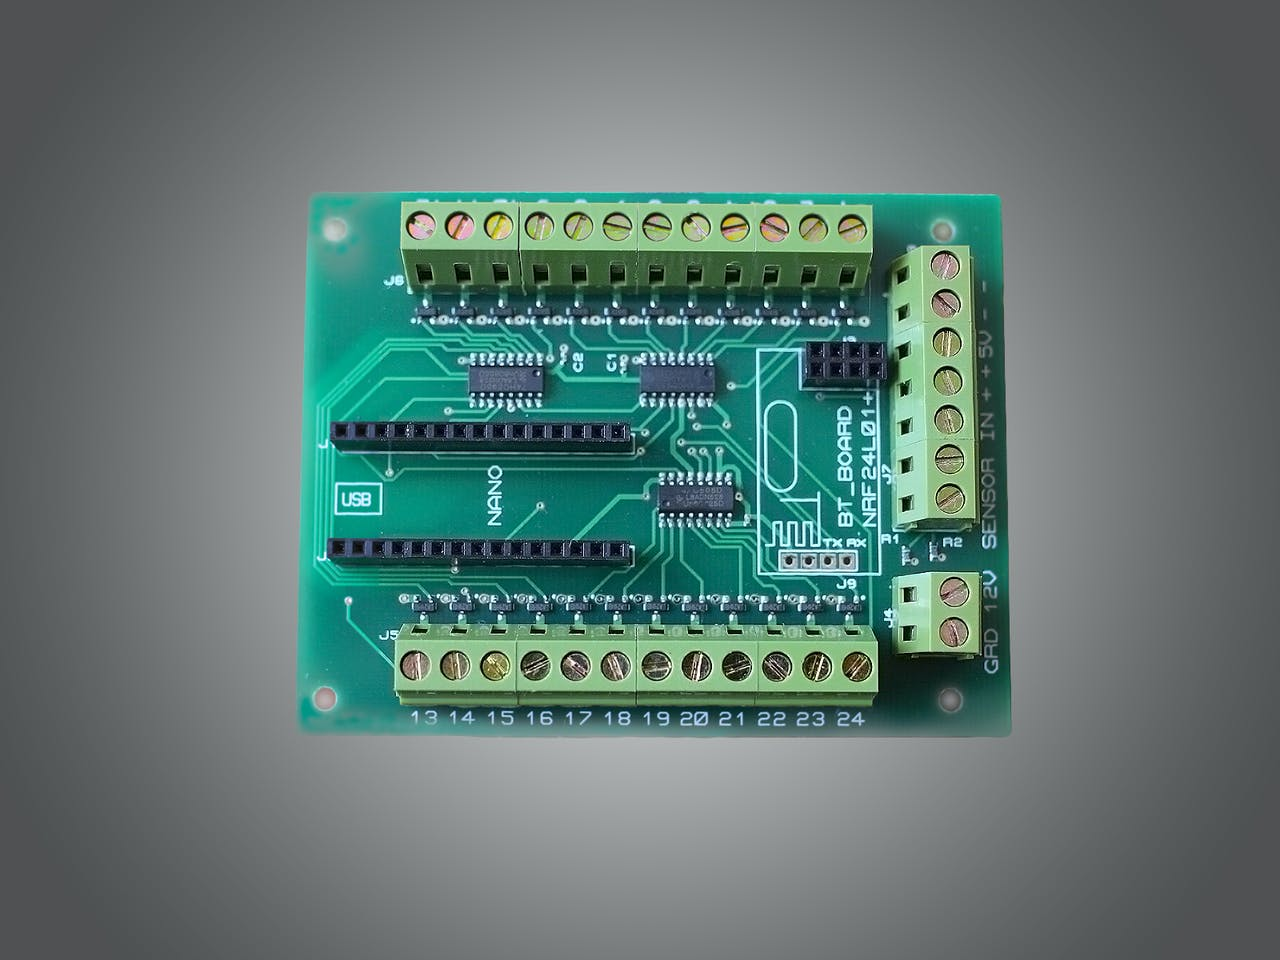 Automatic Led Stairs Lighting Arduino Shield Project Hub Ididit Wiring Diagram